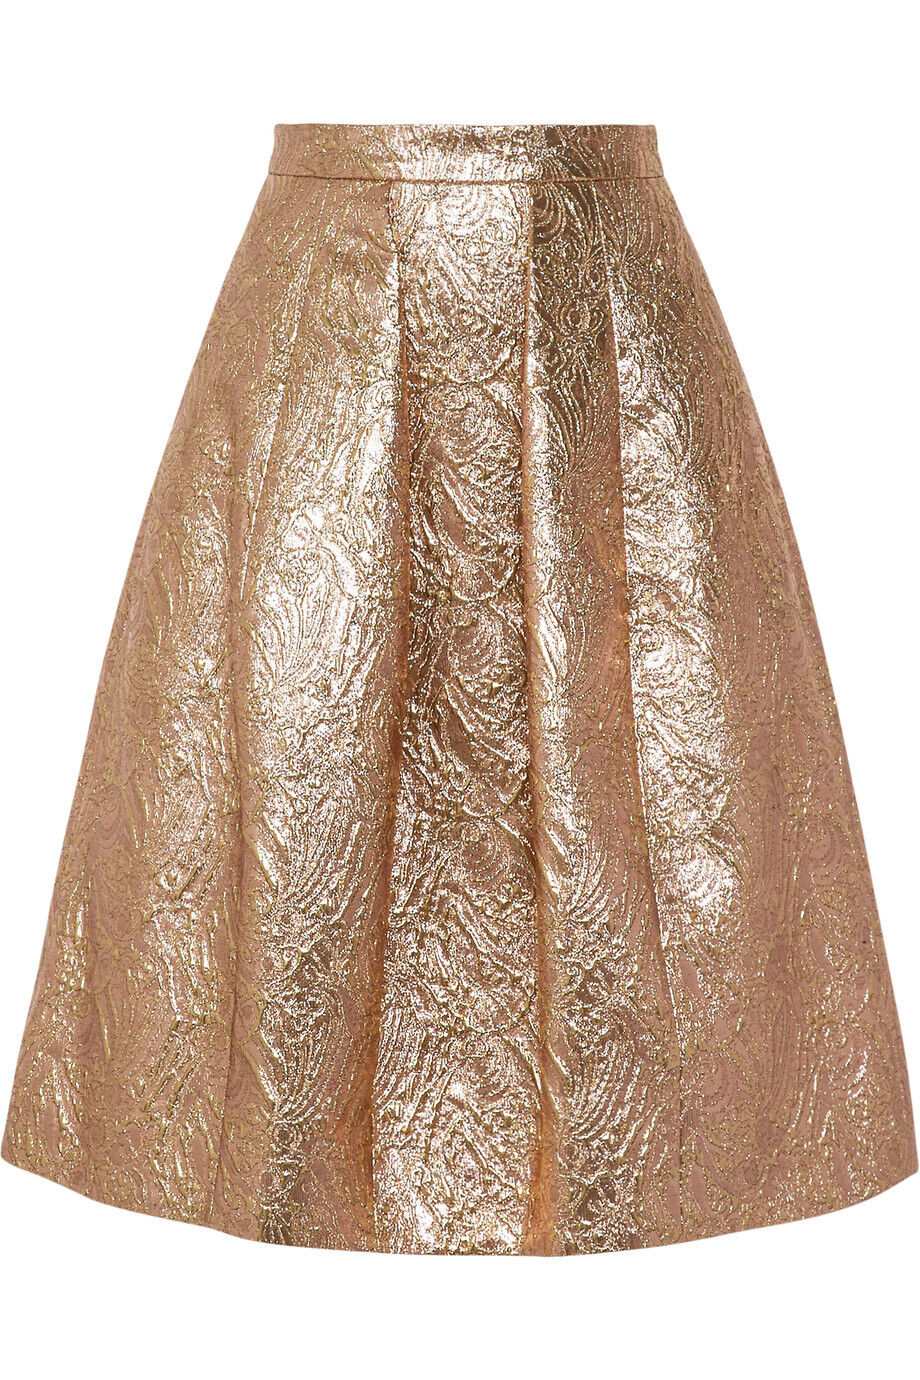 1790 New Oscar De La Renta BAROQUE JACQUARD LAME pink gold Brocade Skirt 0 2 4